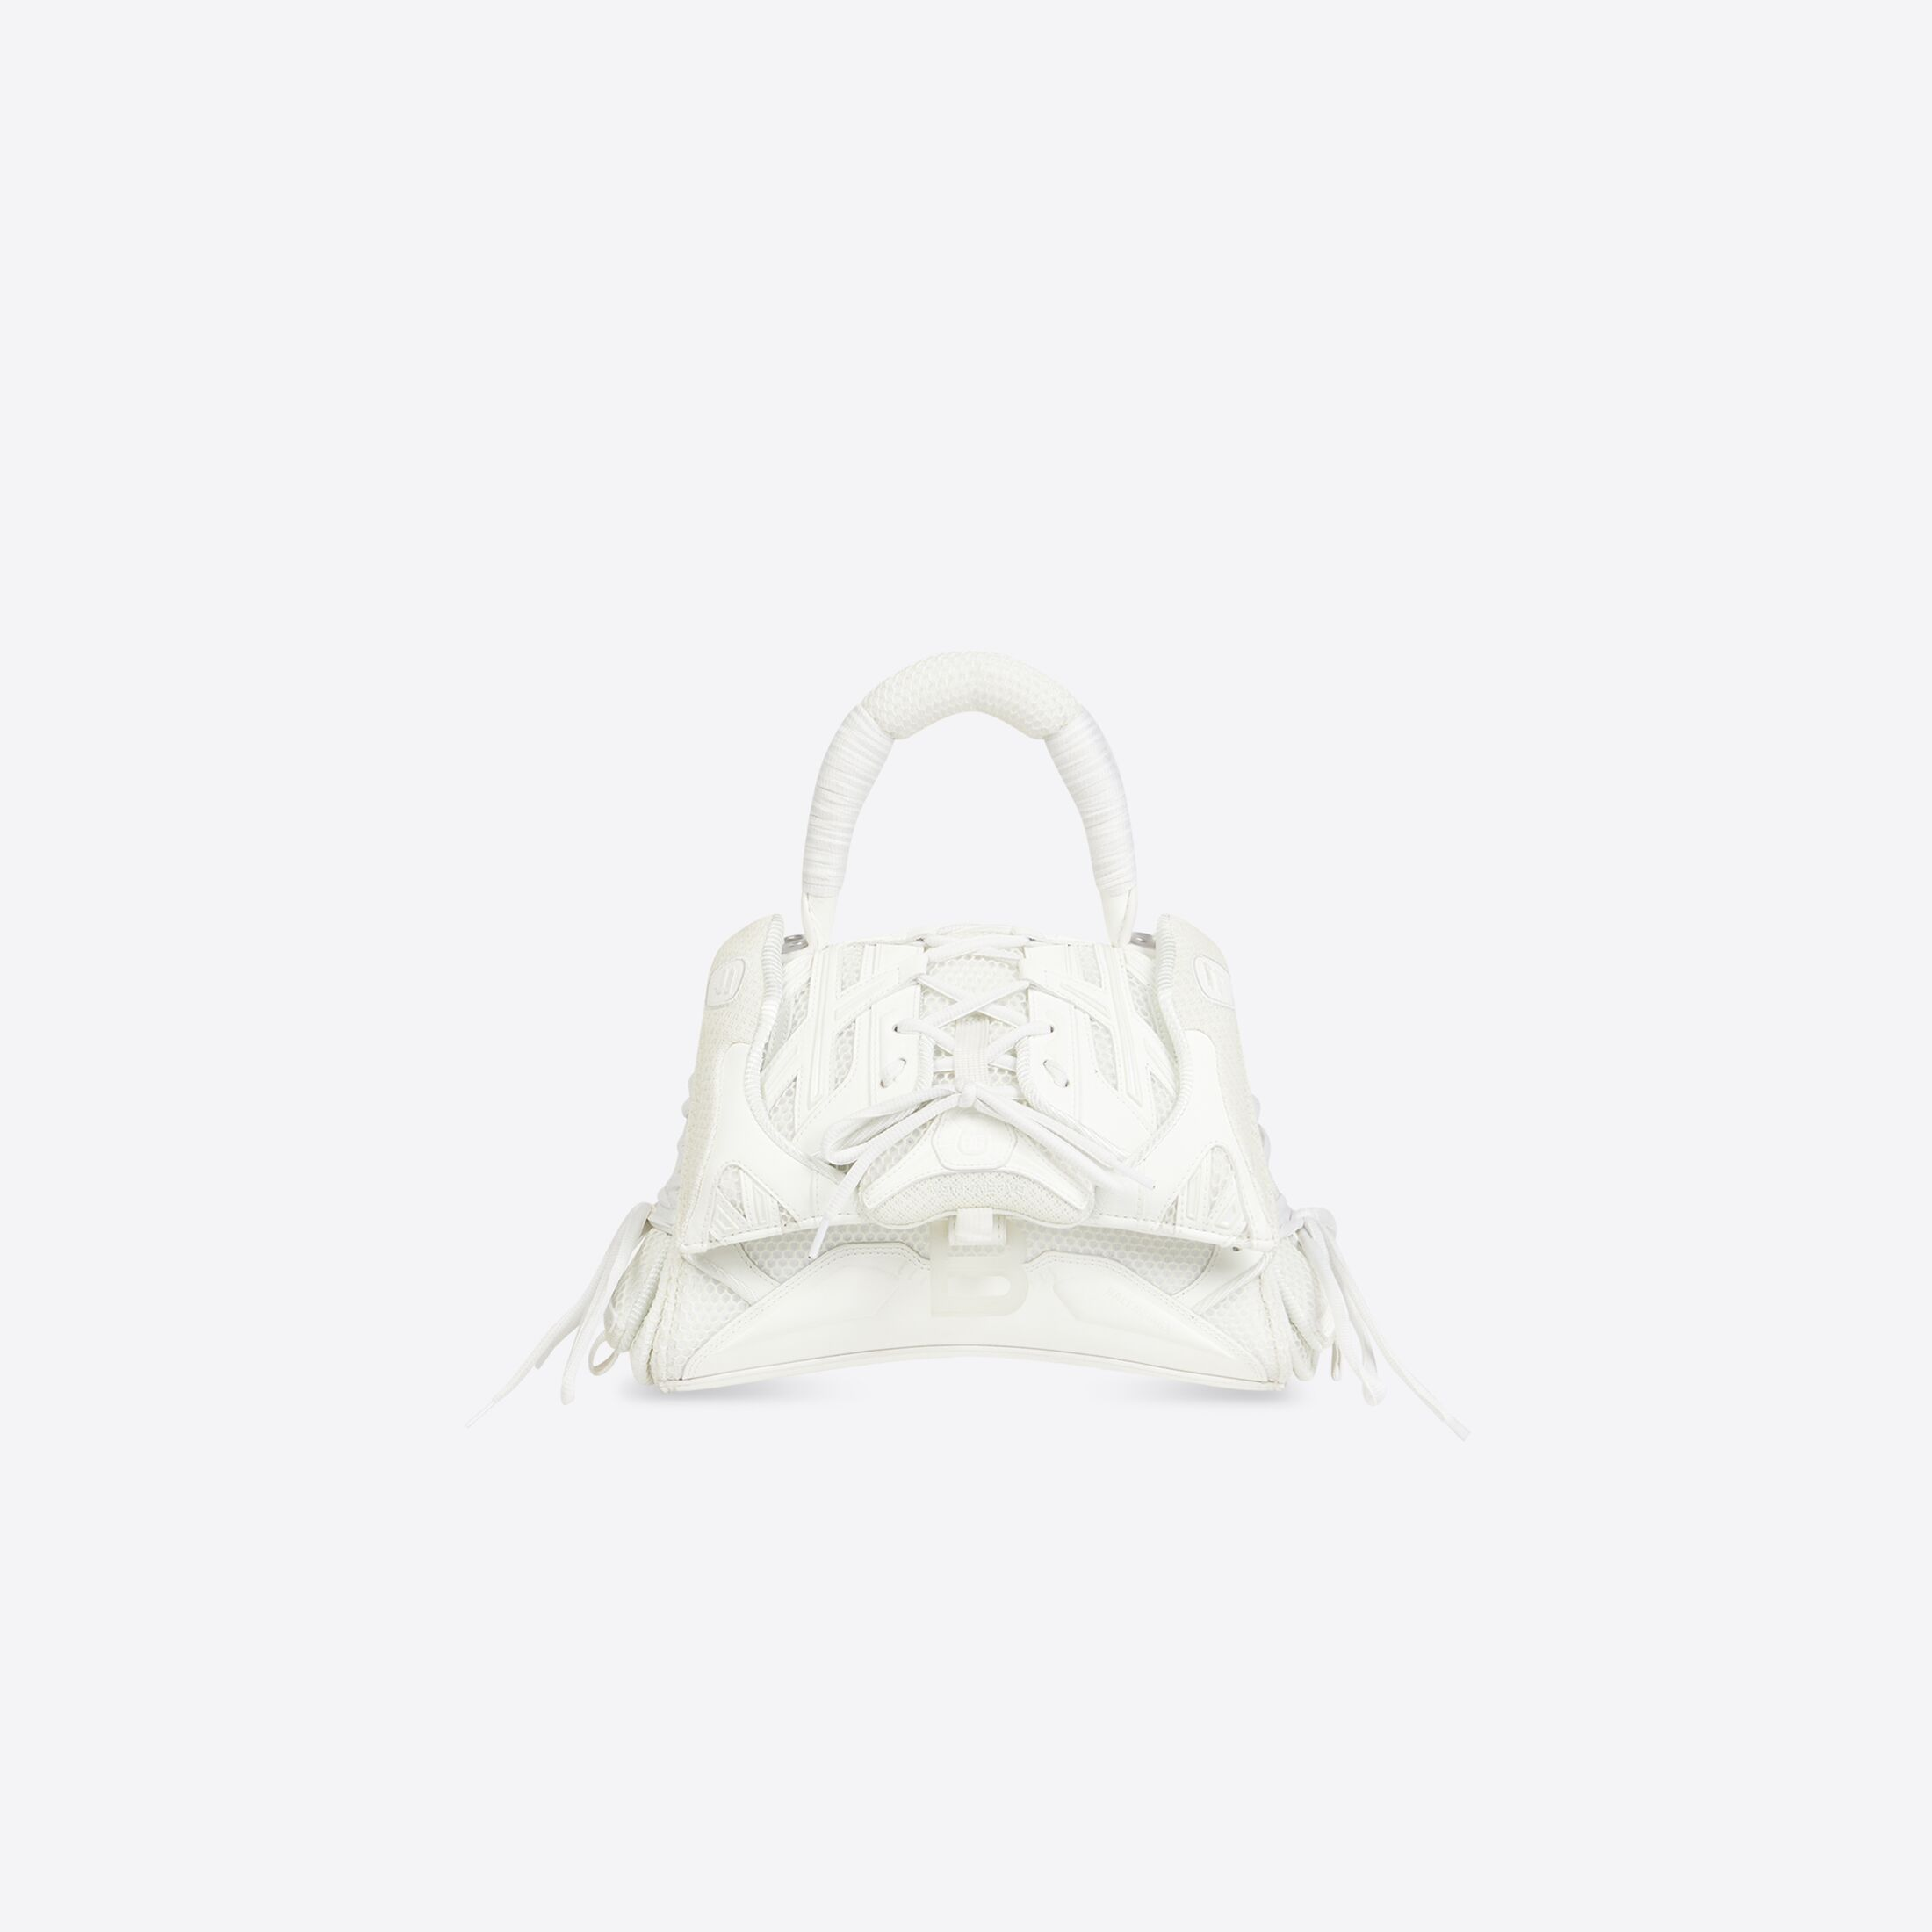 WOMEN'S PHOSPHORESCENT SNEAKERHEAD SMALL TOP HANDLE BAG IN WHITE by Balenciaga, available on balenciaga.com for $2150 Kylie Jenner Bags Exact Product